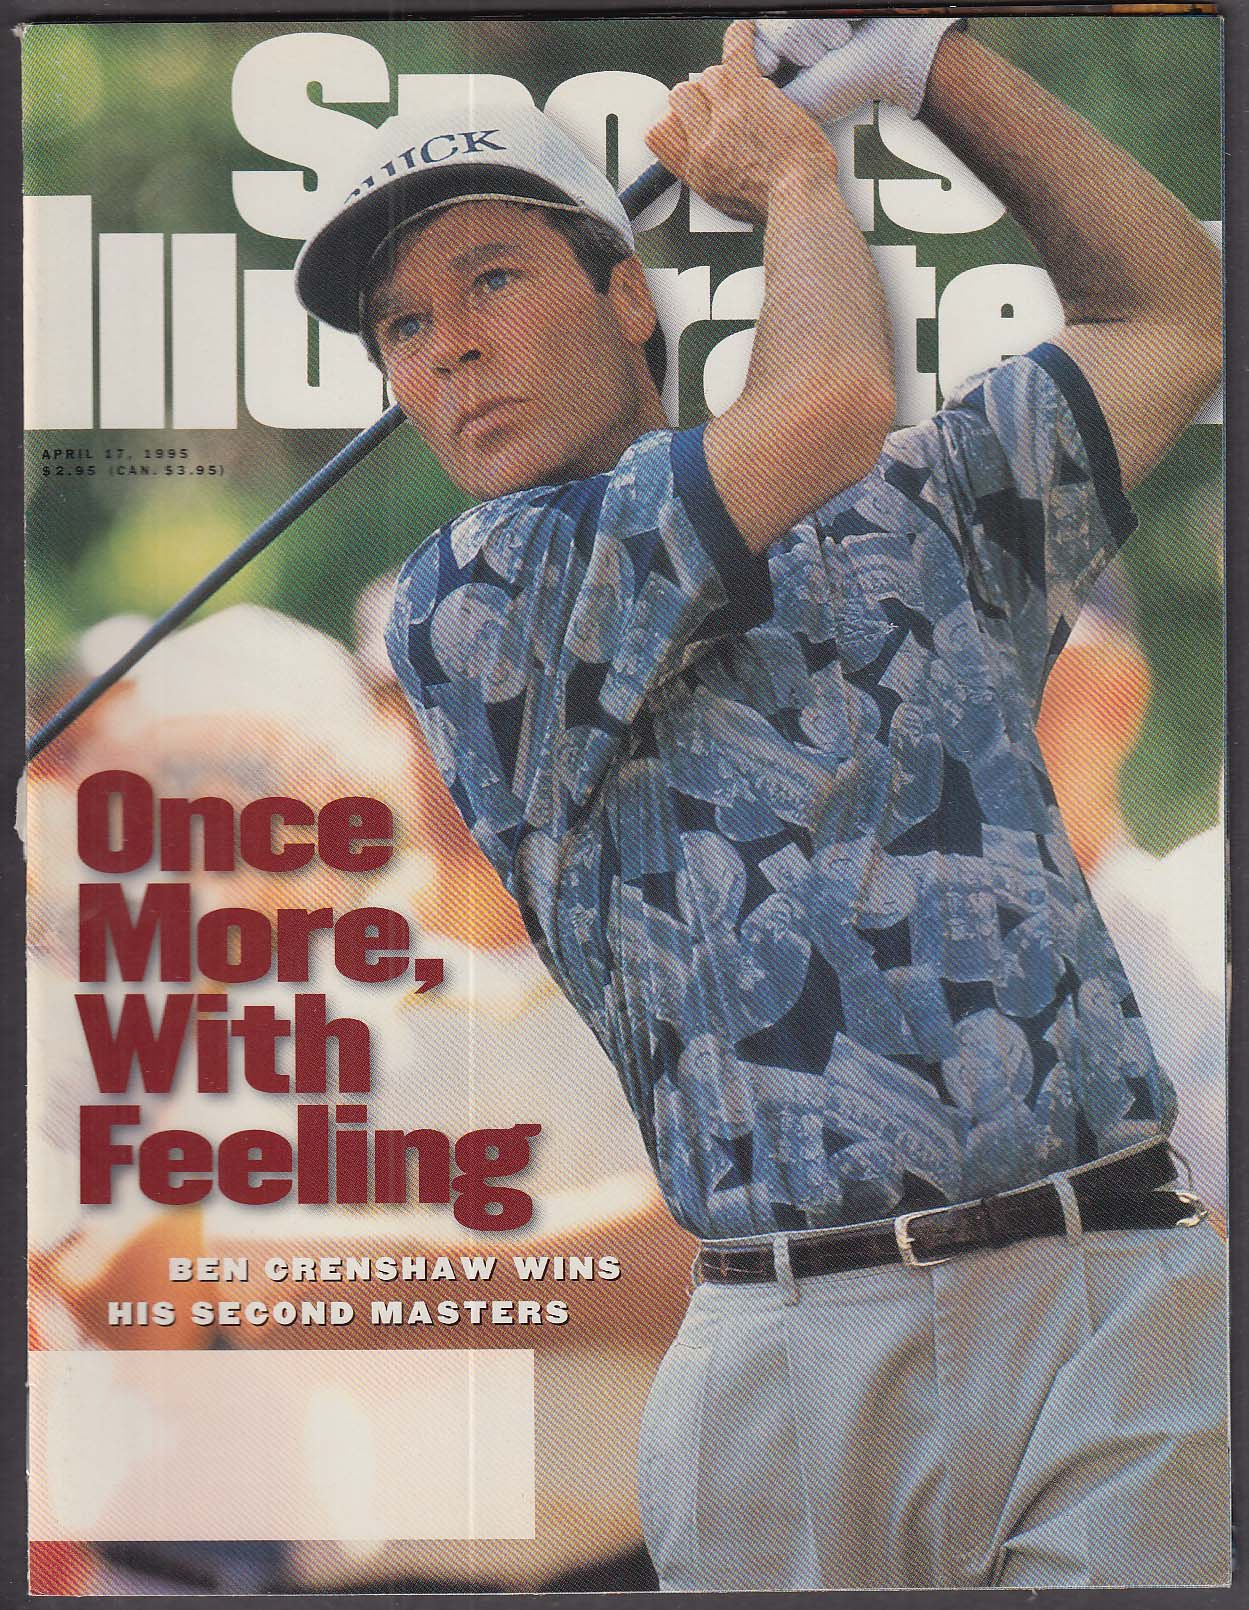 SPORTS ILLUSTRATED Ben Crenshaw Jim Carey ++ 4/17 1995